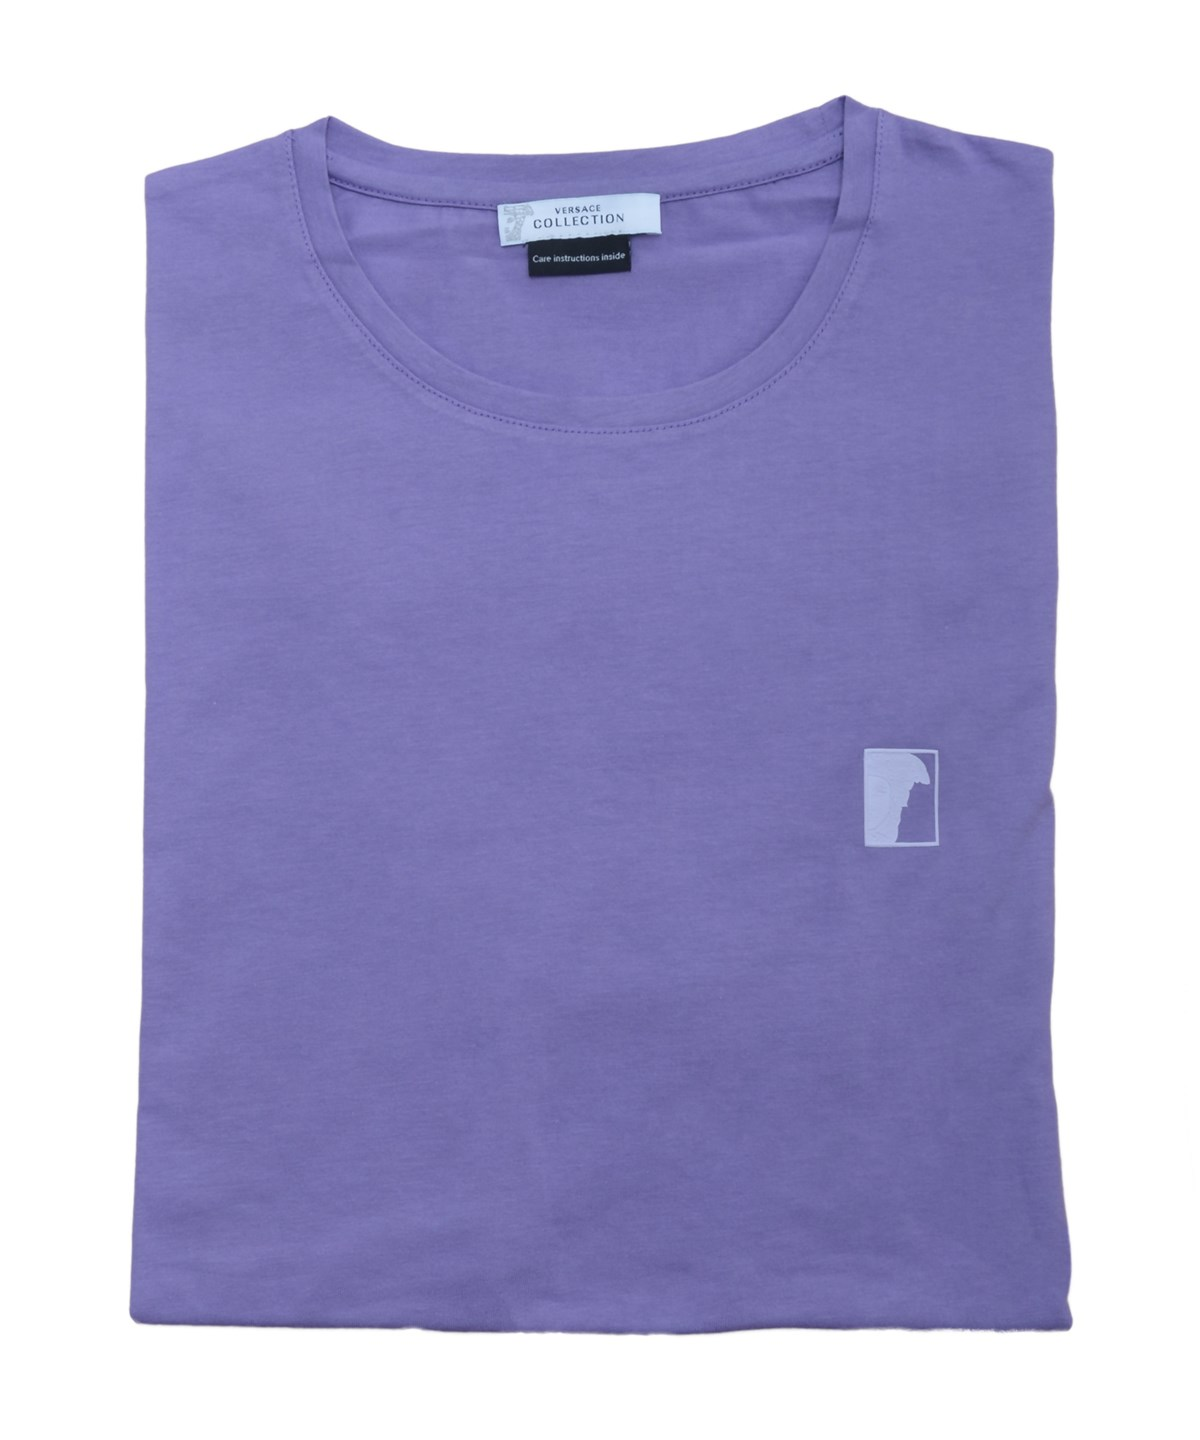 VERSACE COLLECTION MEN MEDUSA LOGO CREW NECK T-SHIRT PURPLE